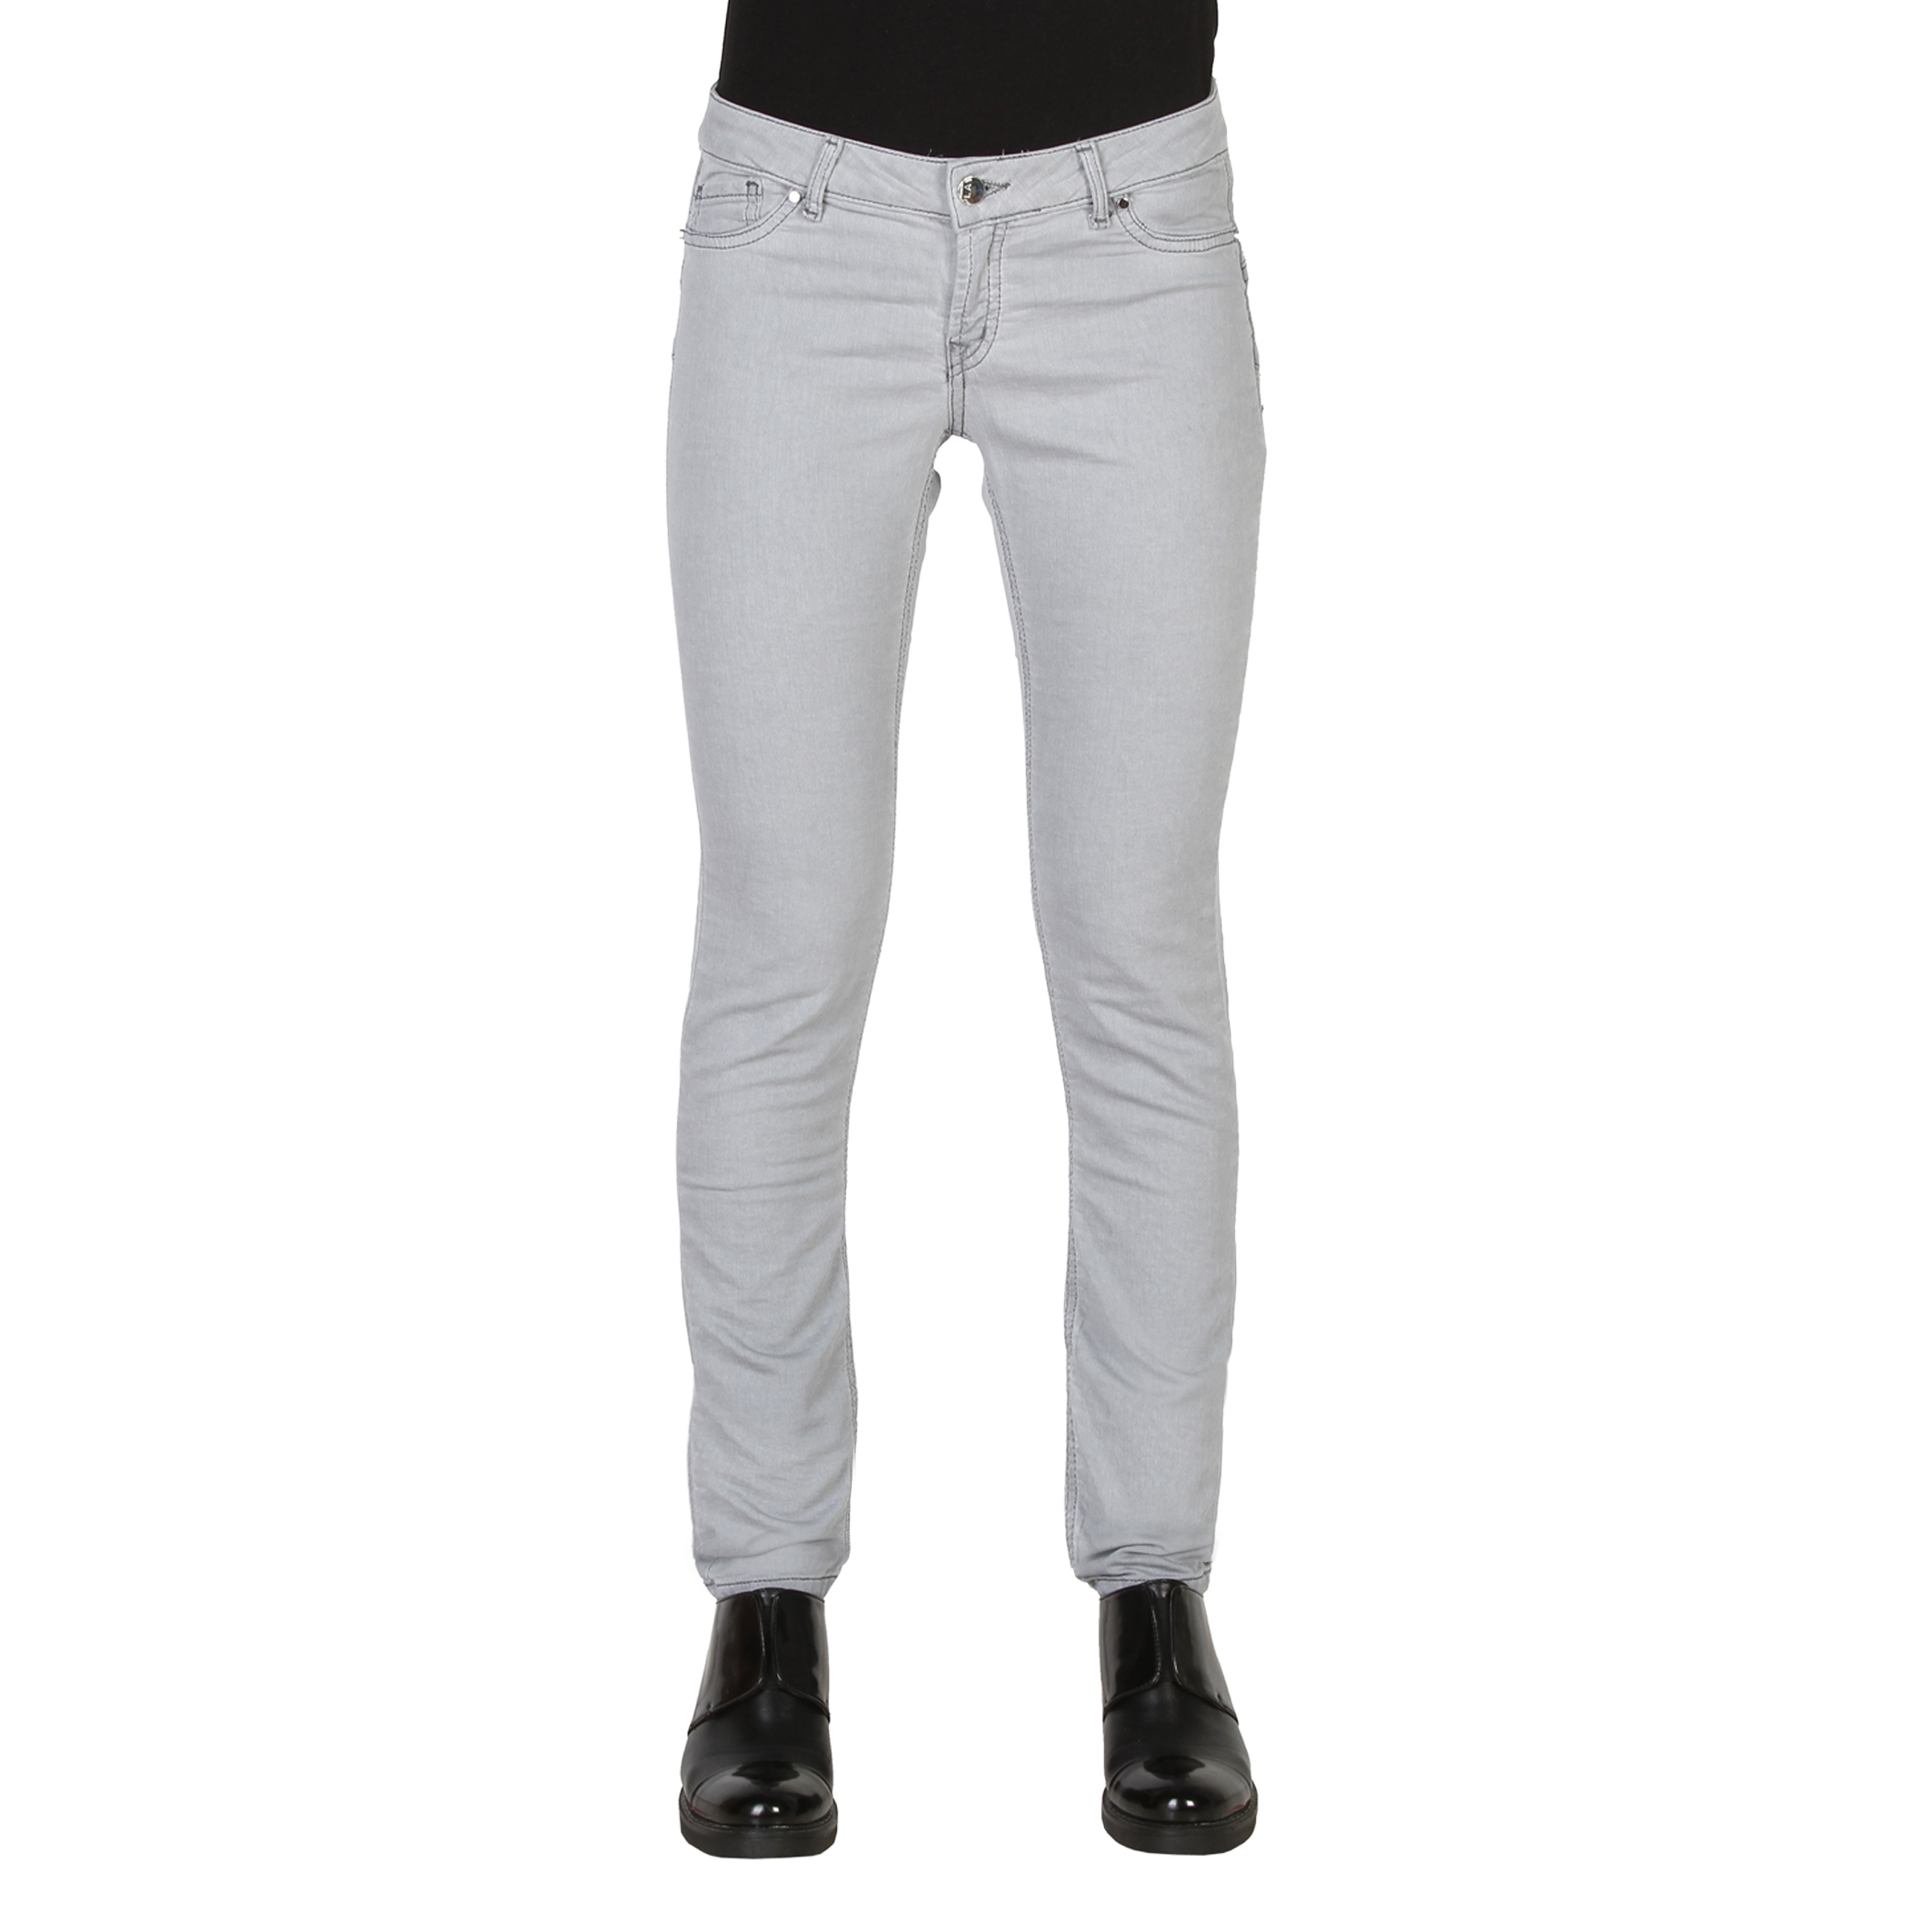 Jeans   Carrera Jeans 000788_0980A grey